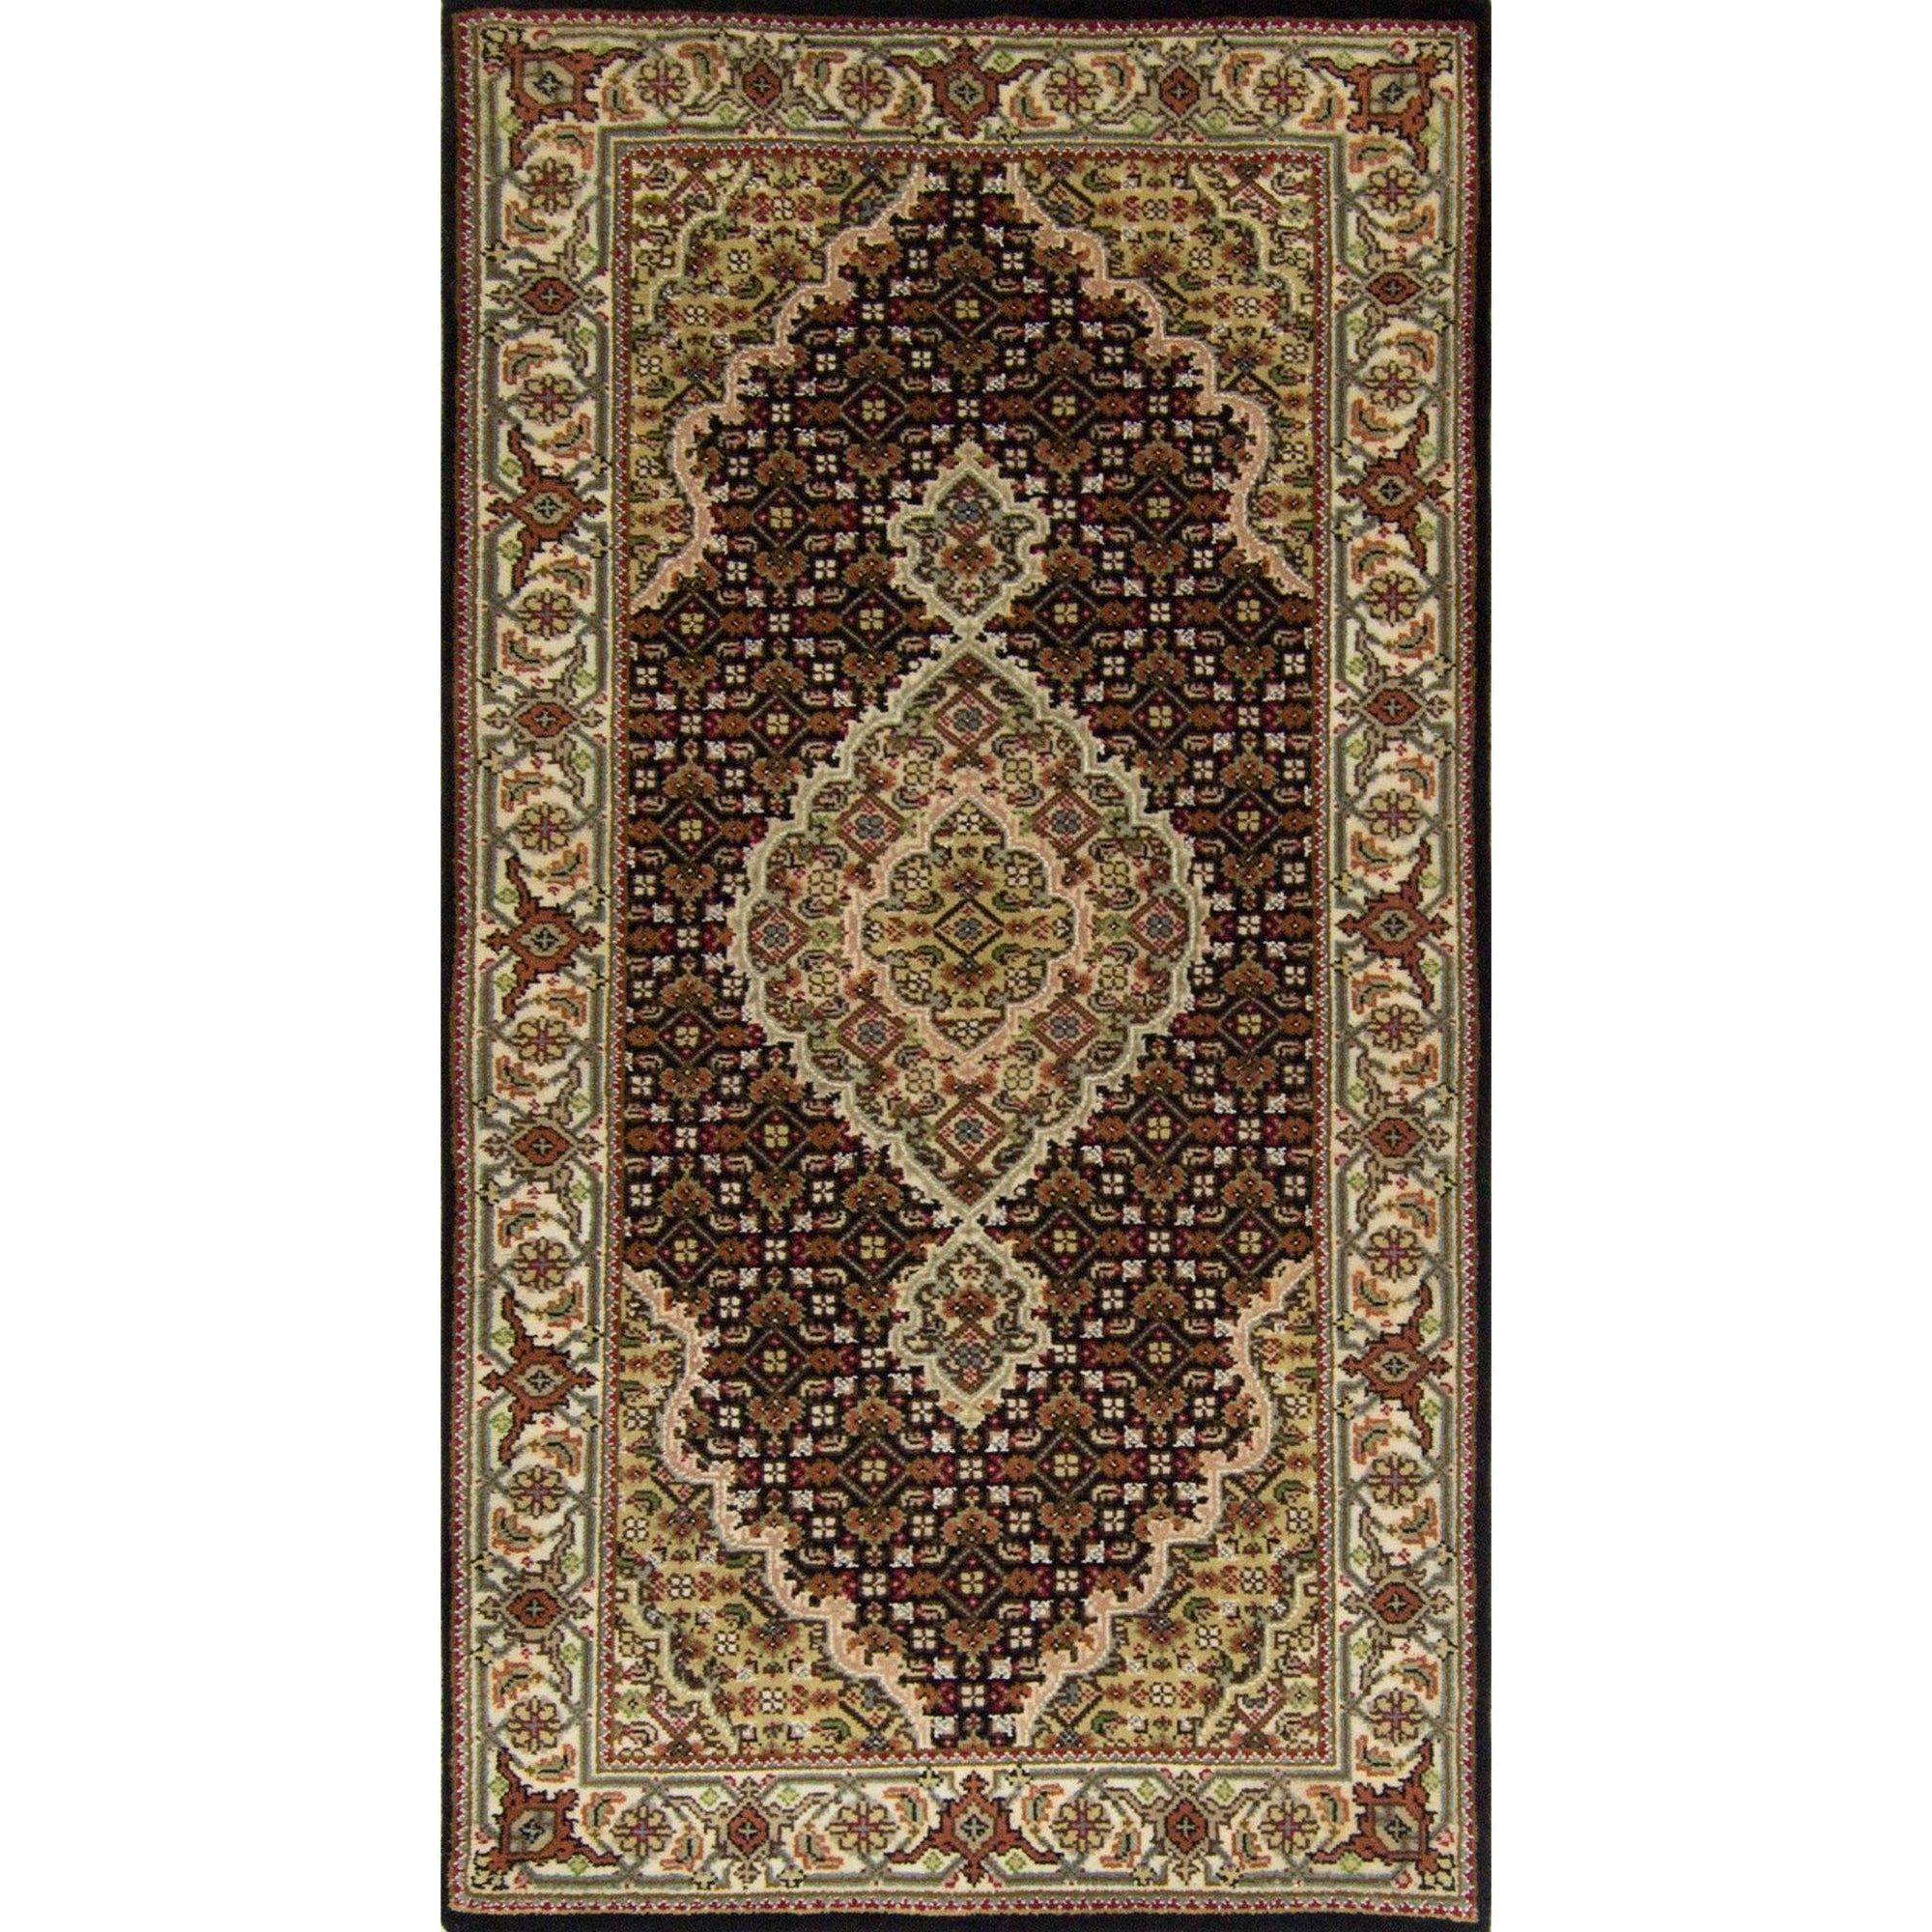 Fine Hand-knotted NZ Wool and Silk Tabriz - Mahi Rug 74cm x 138cm Persian-Rug | House-of-Haghi | NewMarket | Auckland | NZ | Handmade Persian Rugs | Hand Knotted Persian Rugs